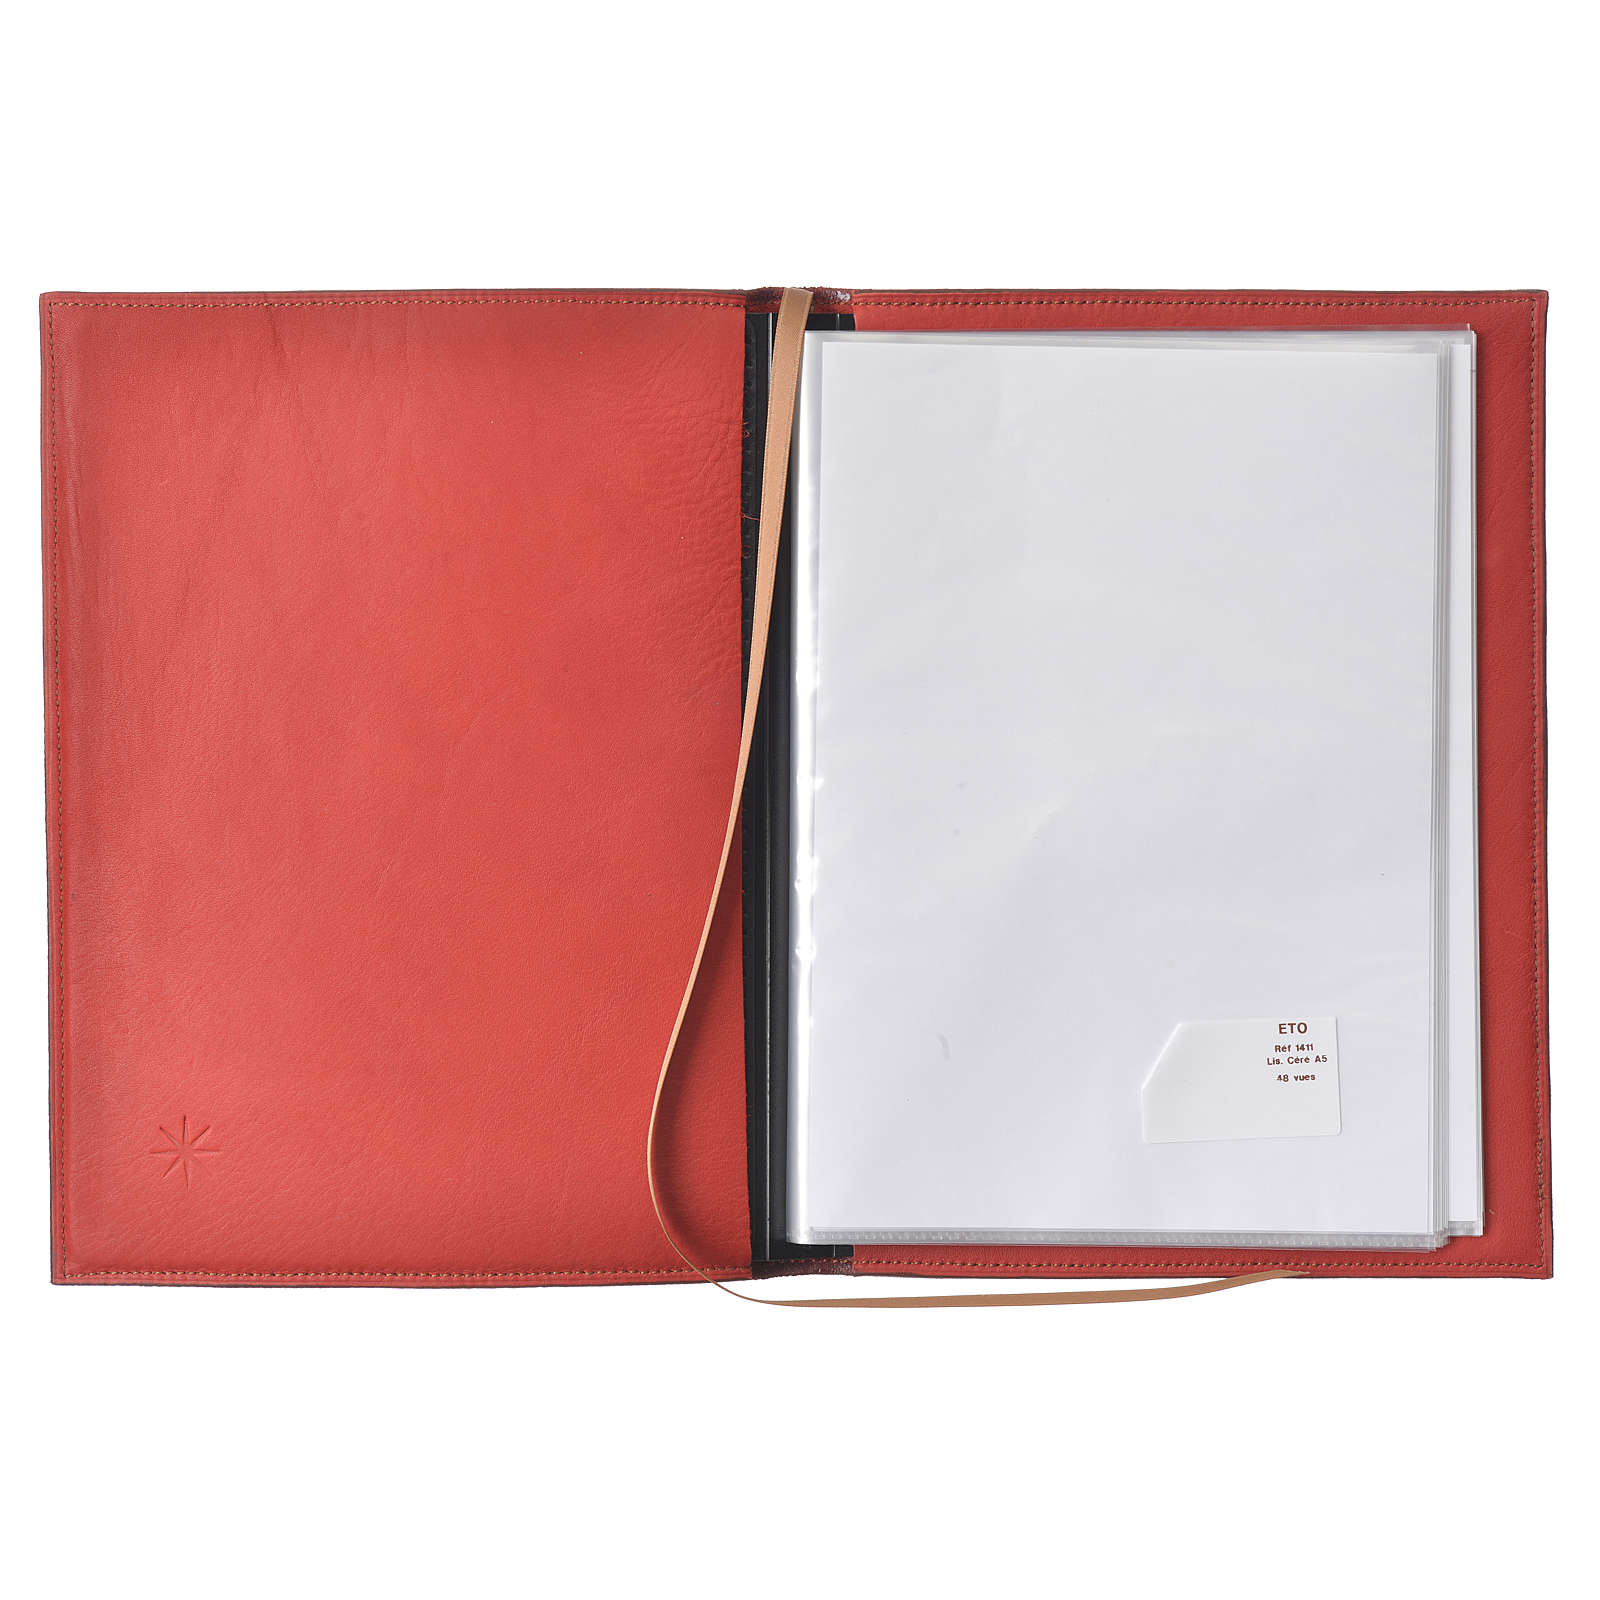 A5 size Red Leather Folder with Hot Pressed Golden Lamb Bethelehem 4